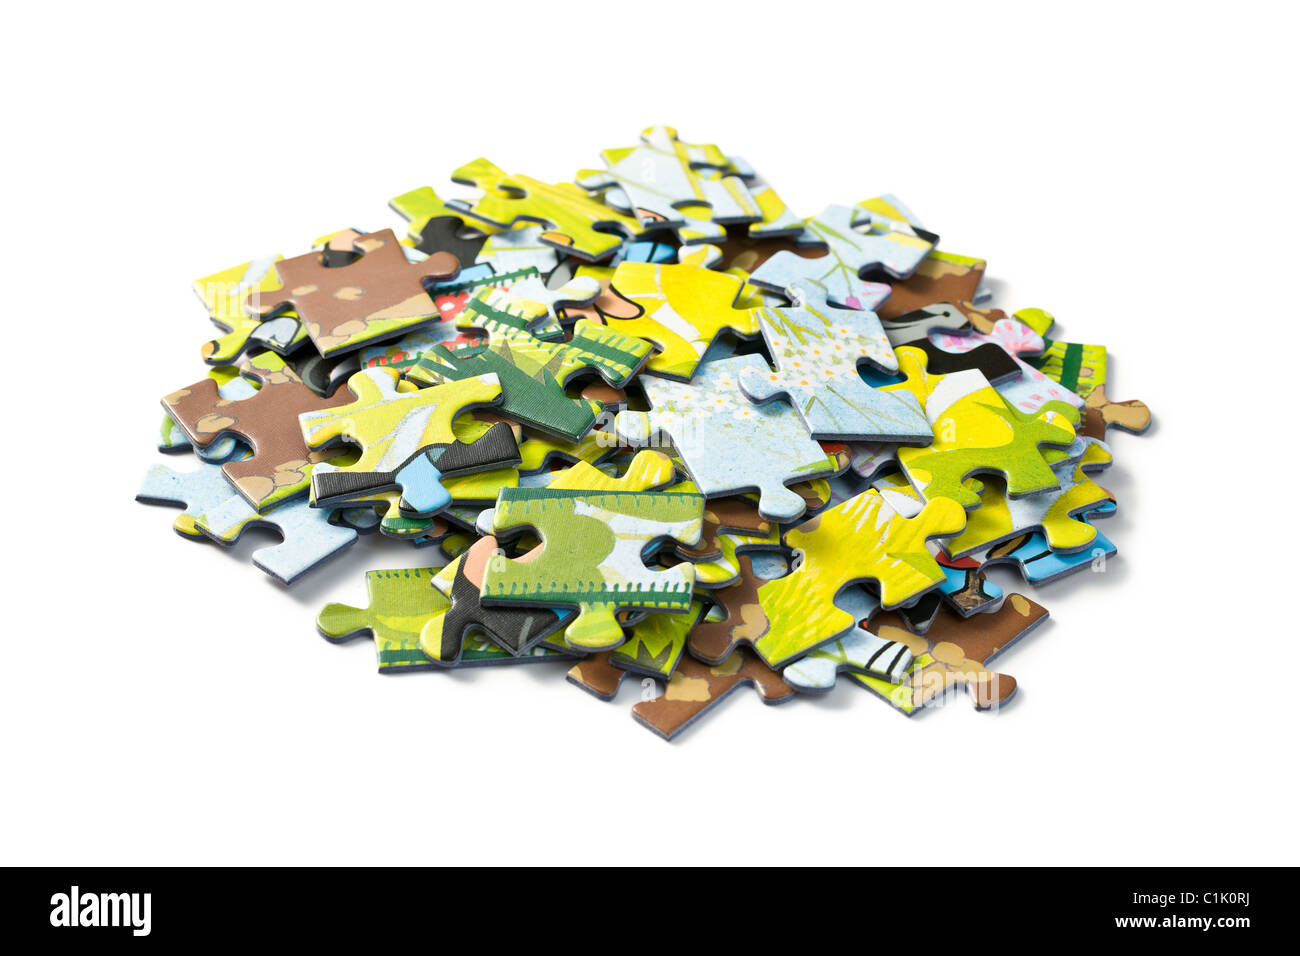 jigsaw puzzle on white background - Stock Image